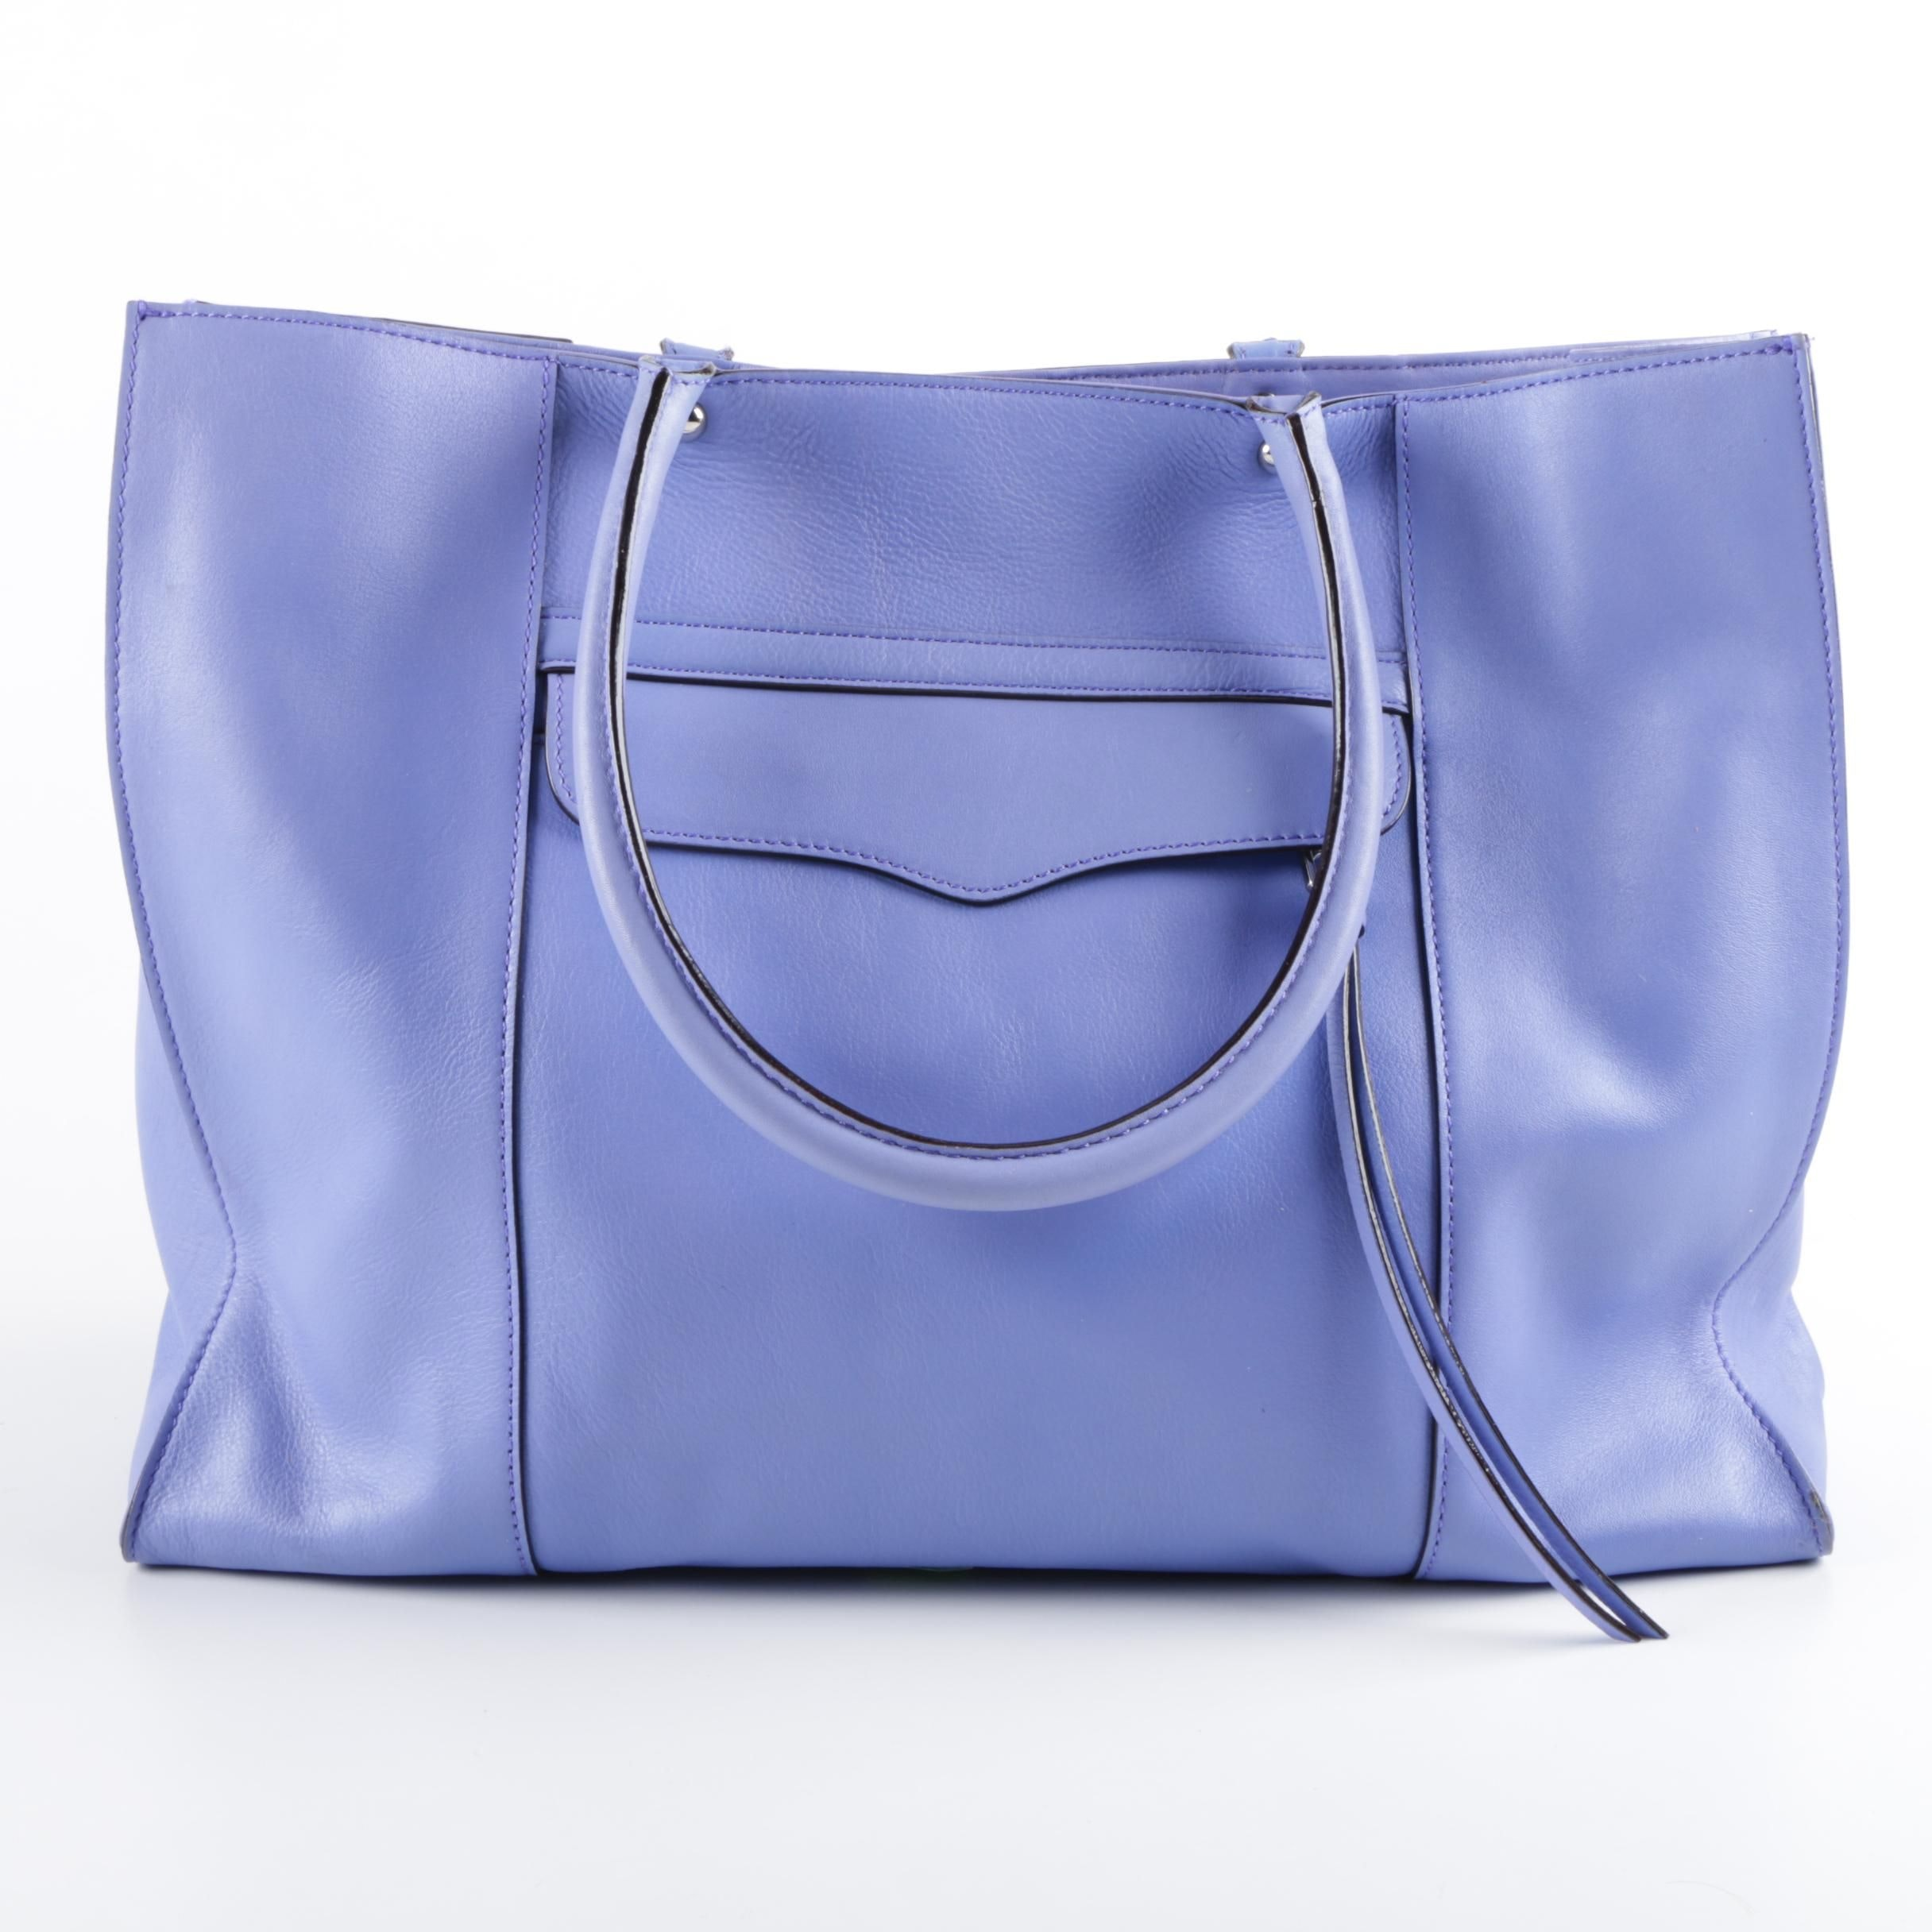 Rebecca Minkoff Periwinkle Leather Tote Bag